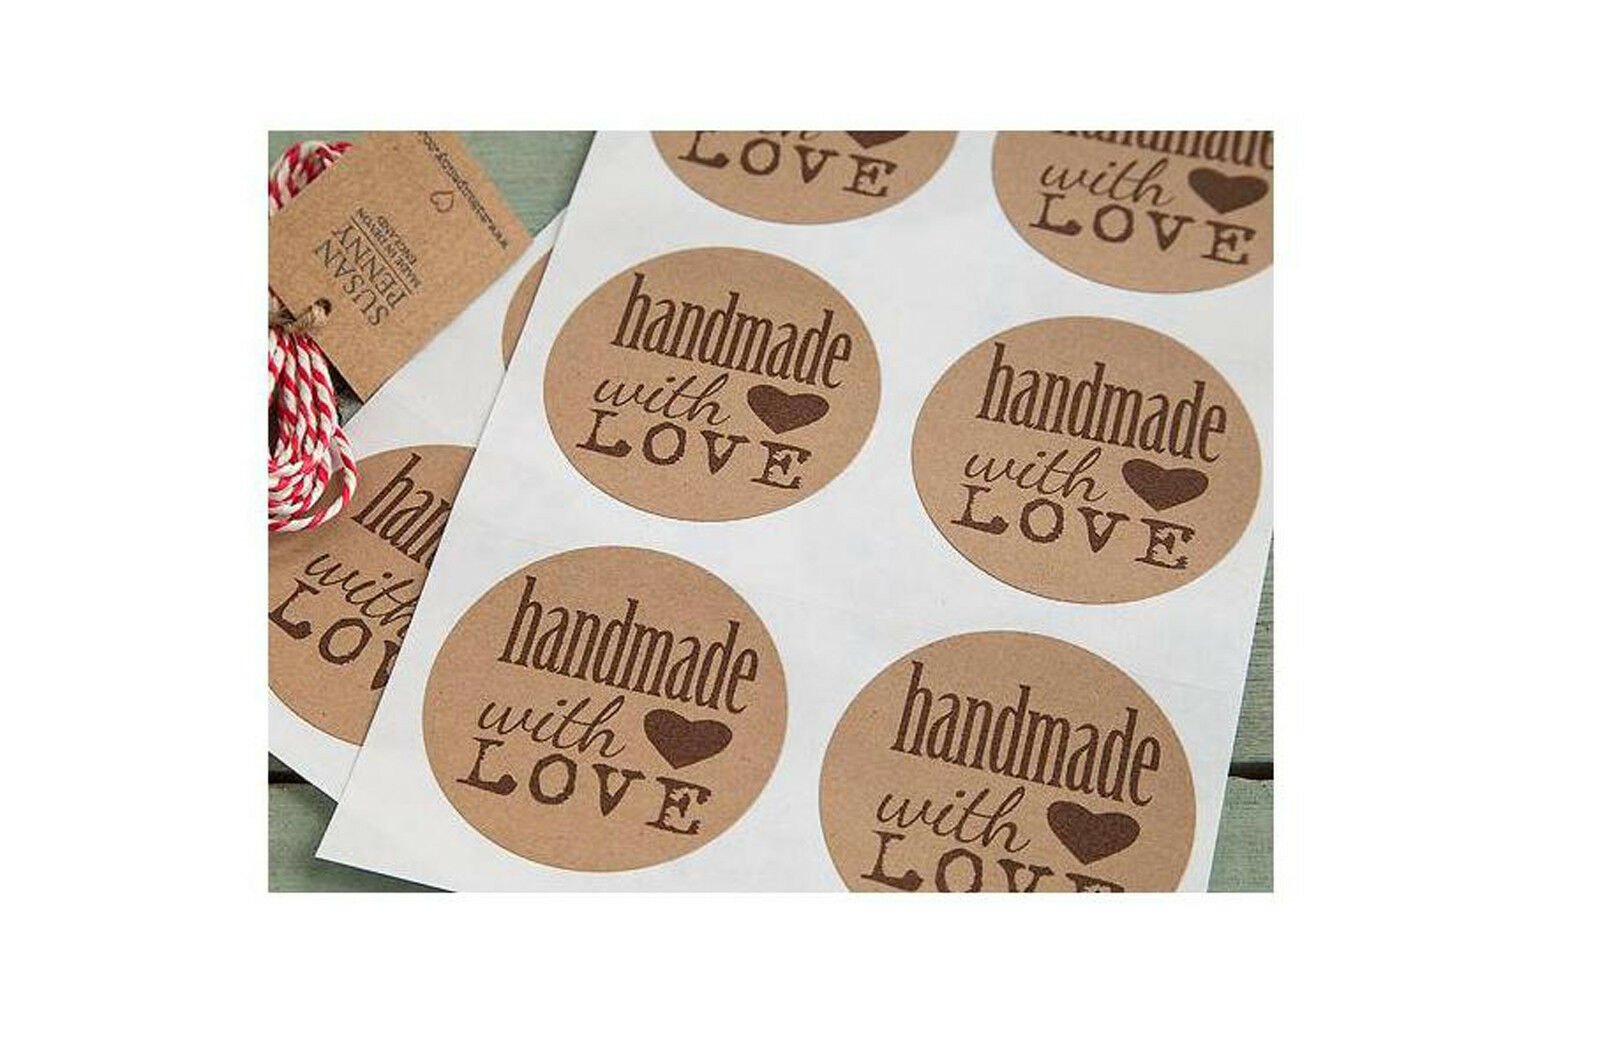 Details about 140 full colour 25mm round brown kraft paper labels stickers custom printed